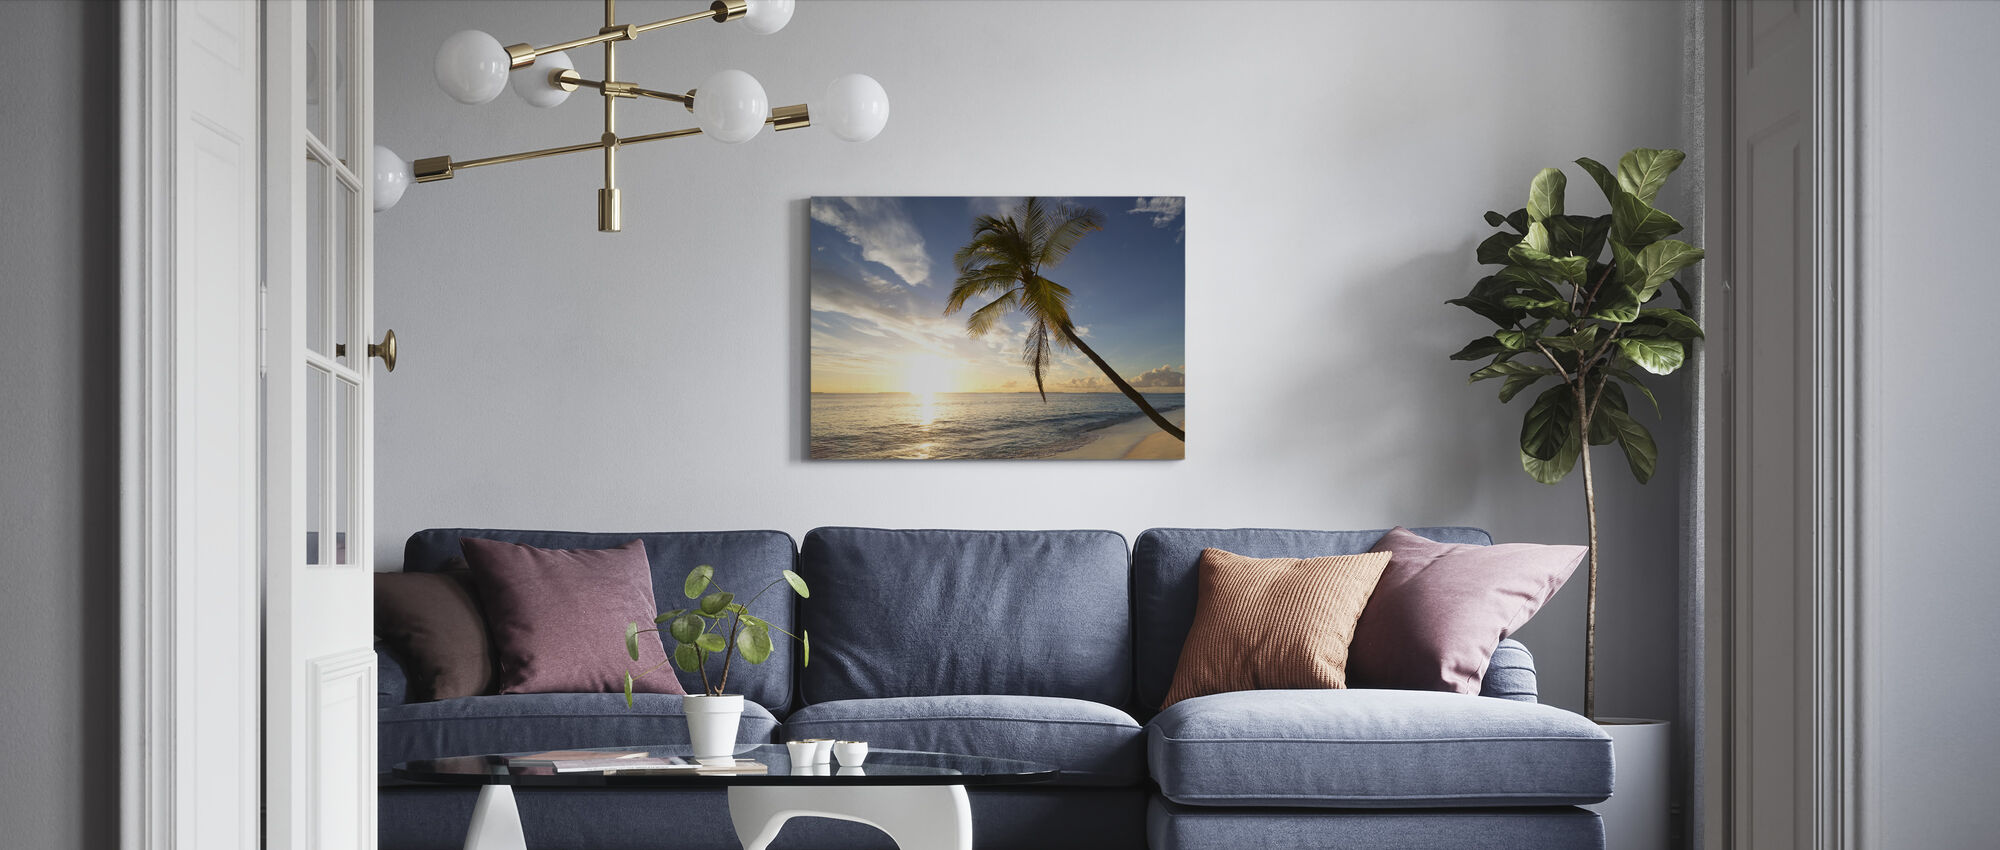 Tropical Sunset - Canvas print - Living Room